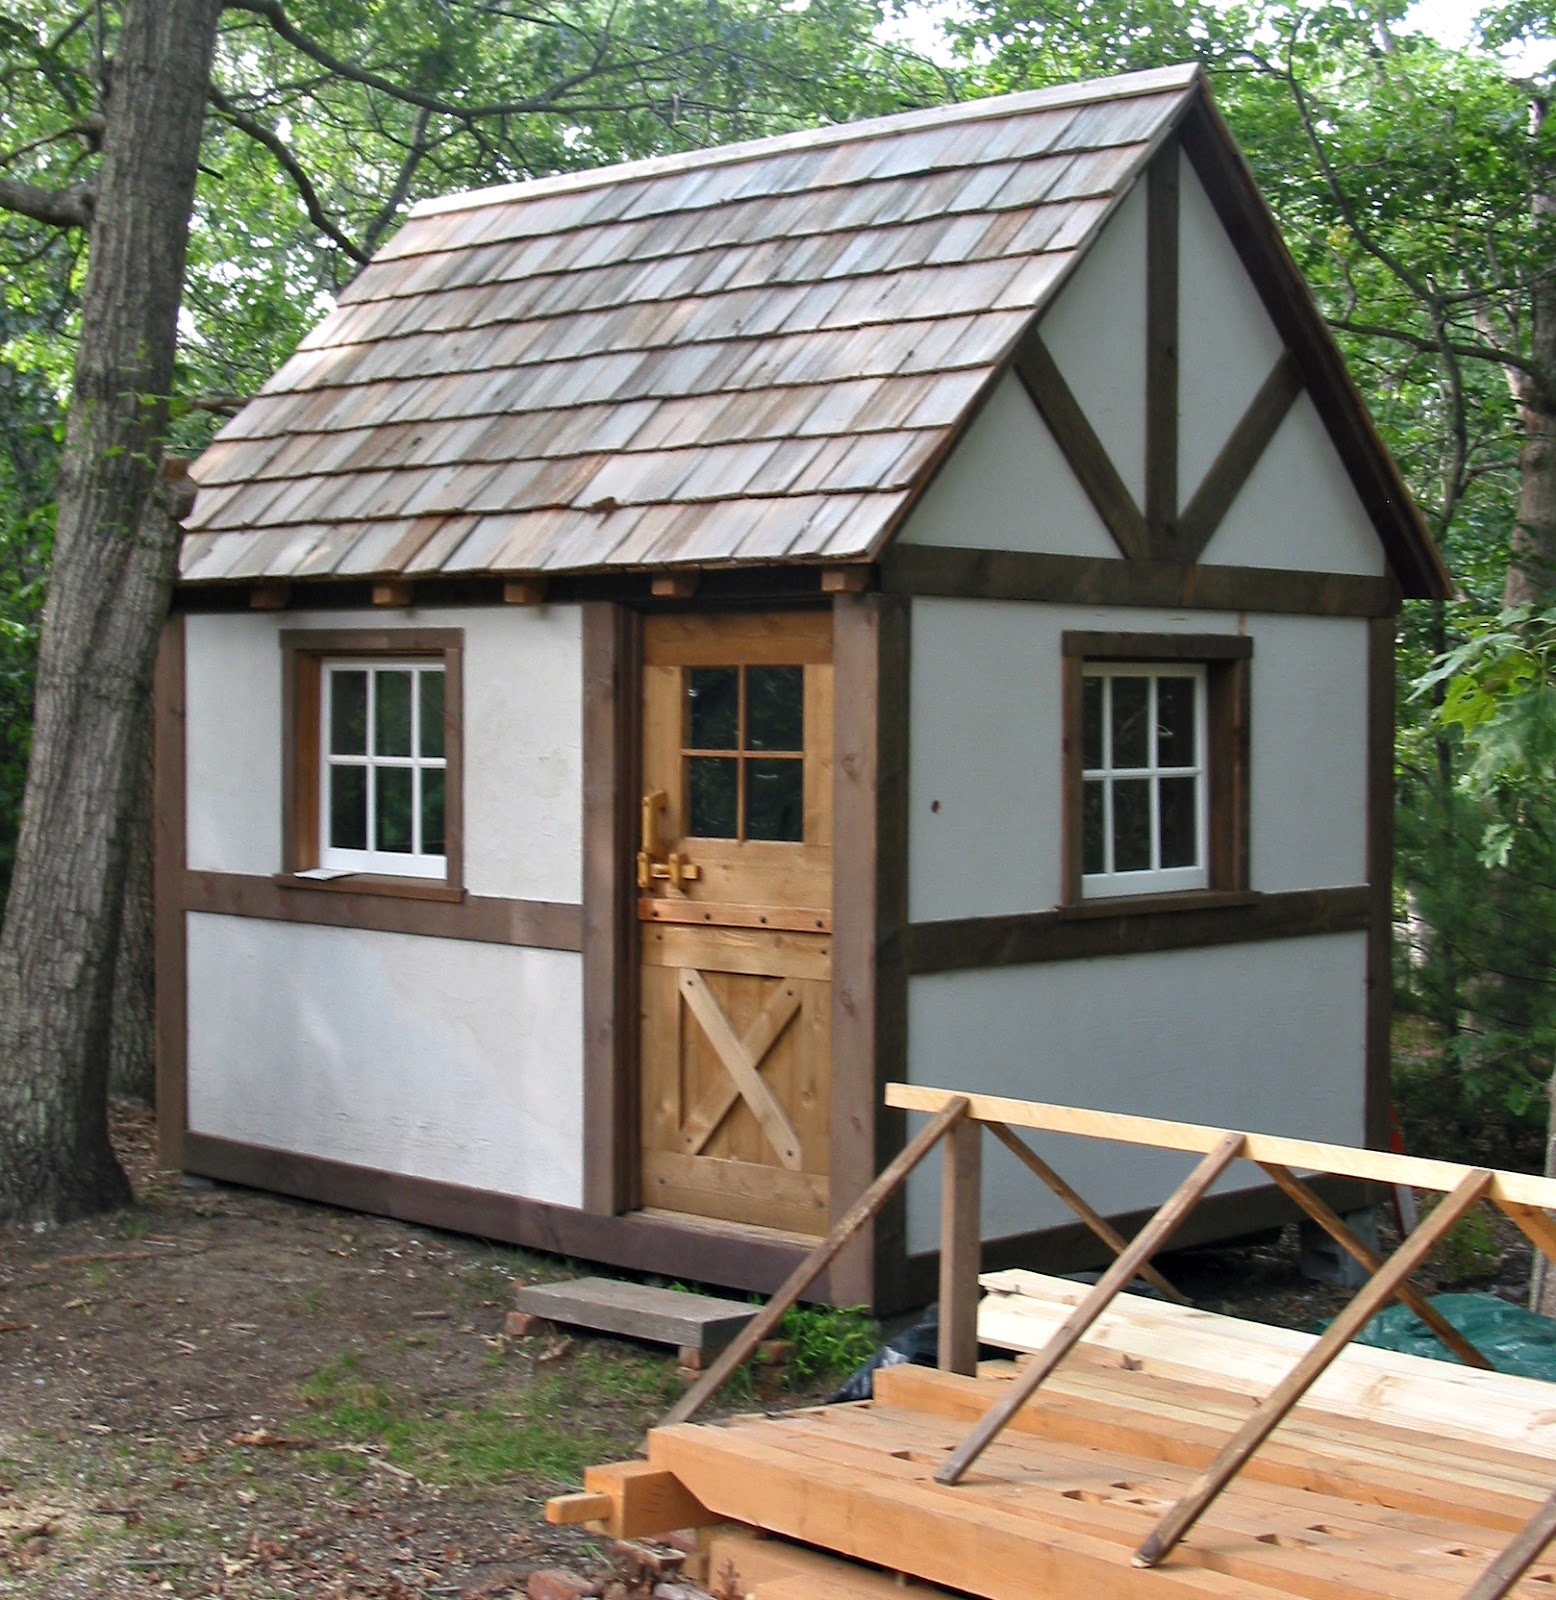 Prefab wood shed best method to build a wood shed shed for Shed design plans